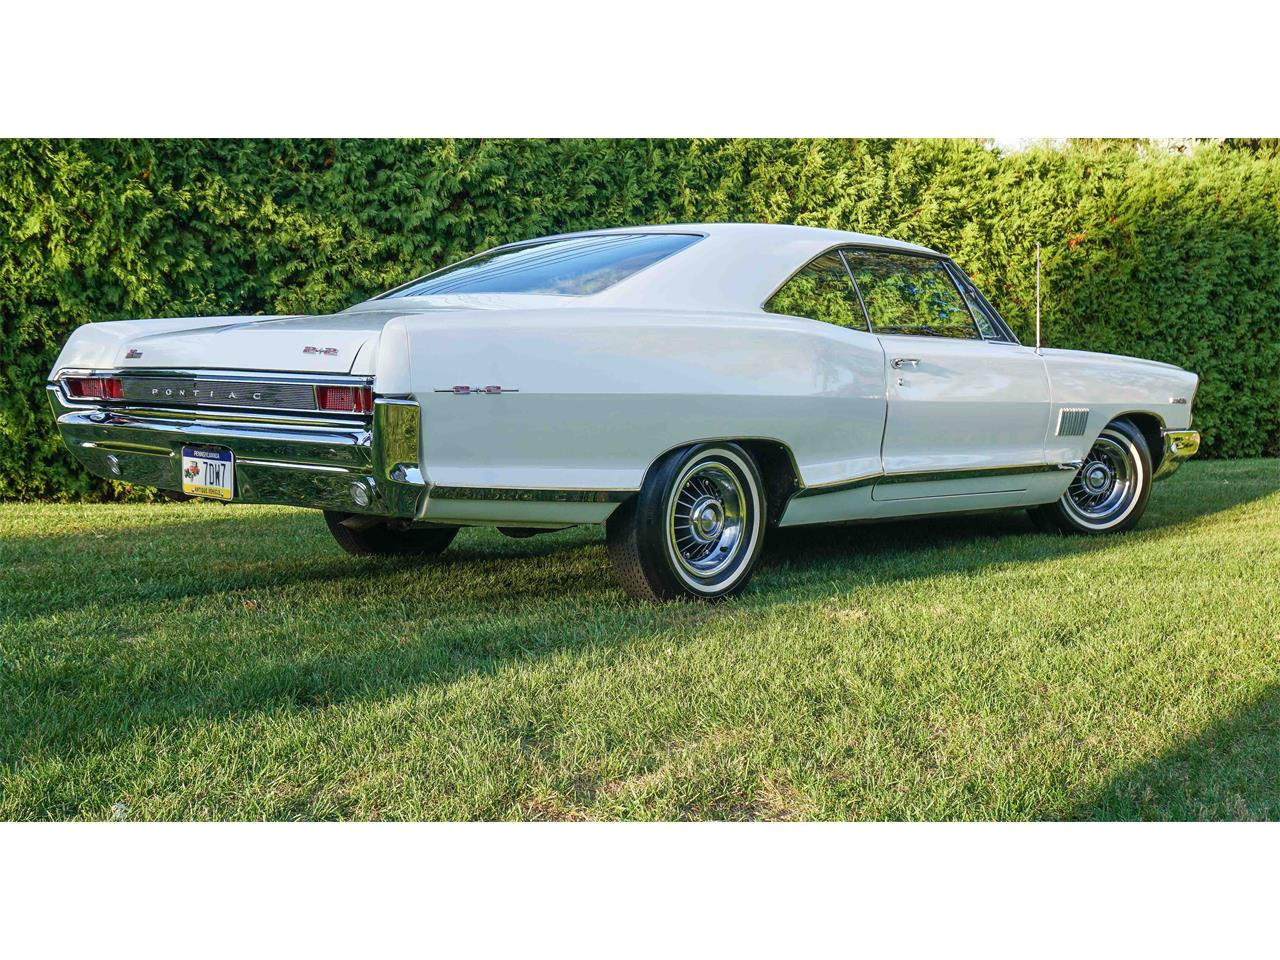 Large Picture of Classic 1965 Pontiac Catalina - $140,000.00 Offered by a Private Seller - O985